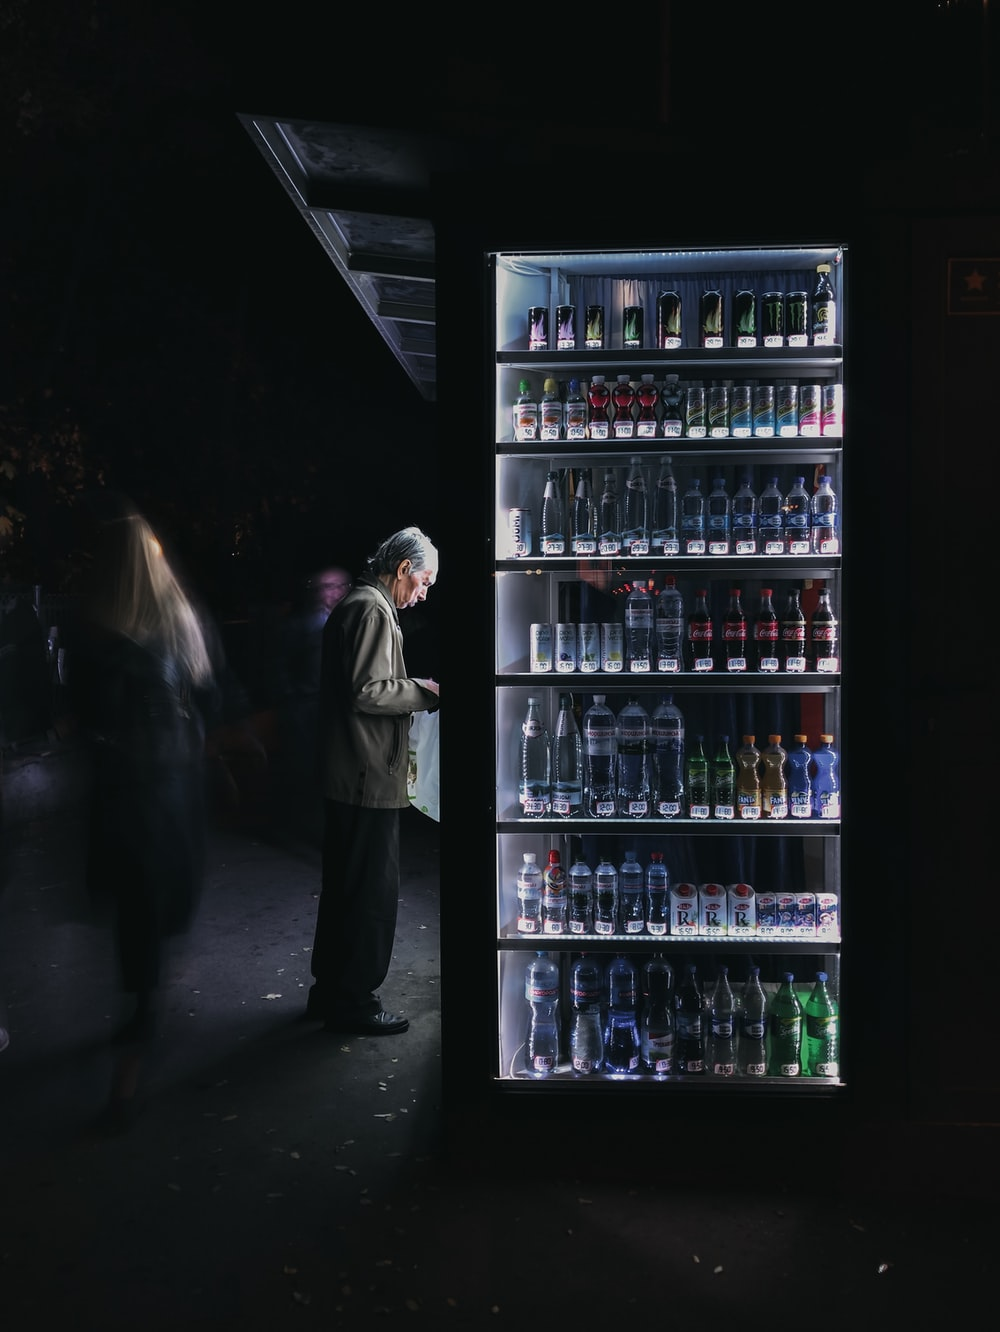 person in front of vending machine